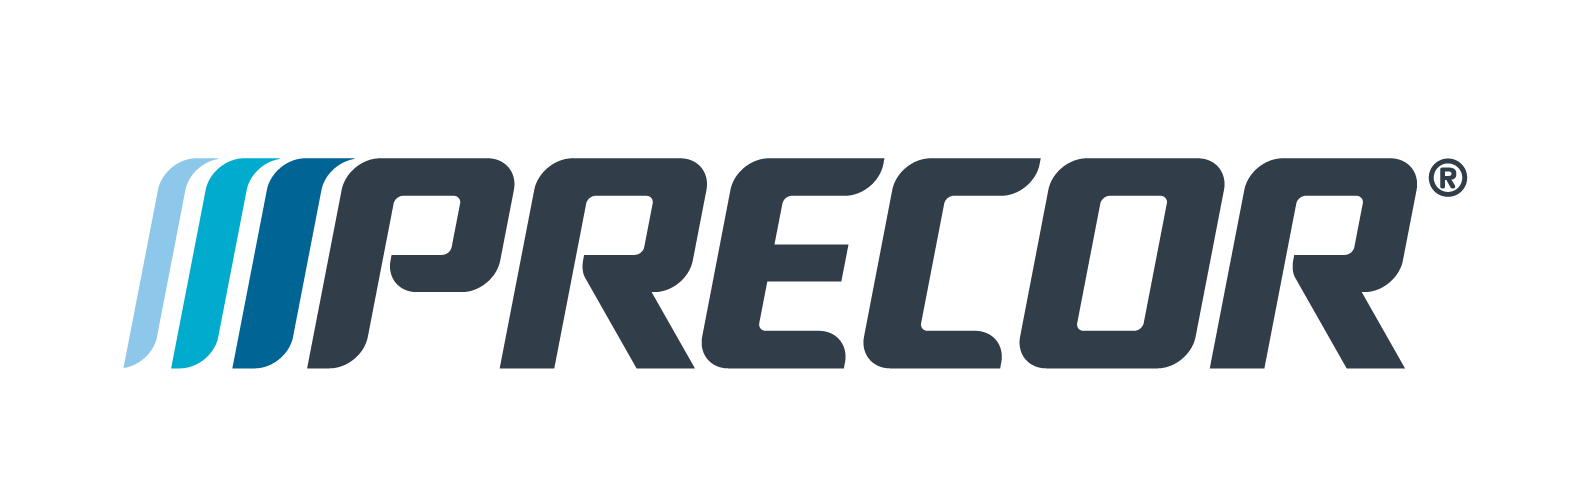 Precor - a popular shoulder press machine brand